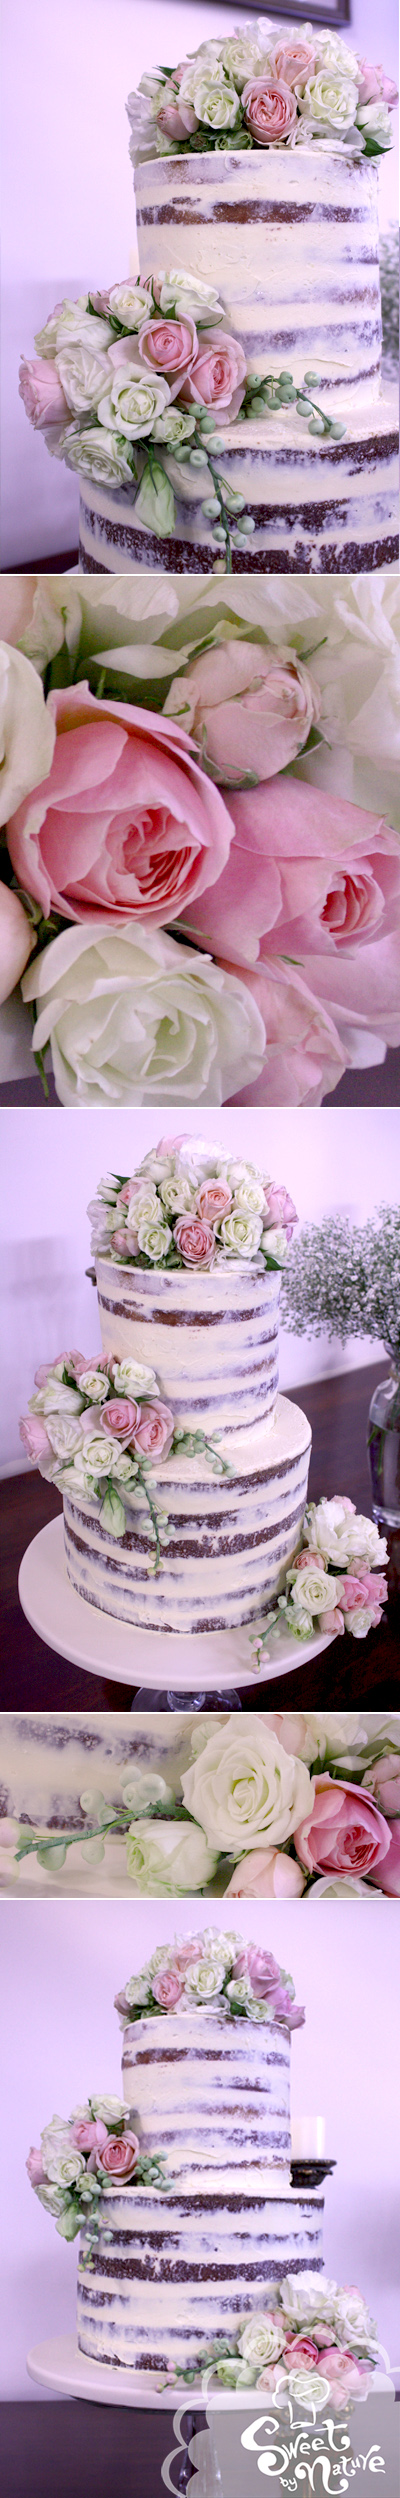 Naked Wedding Cake Fresh Flowers The Perfect Rustic Look